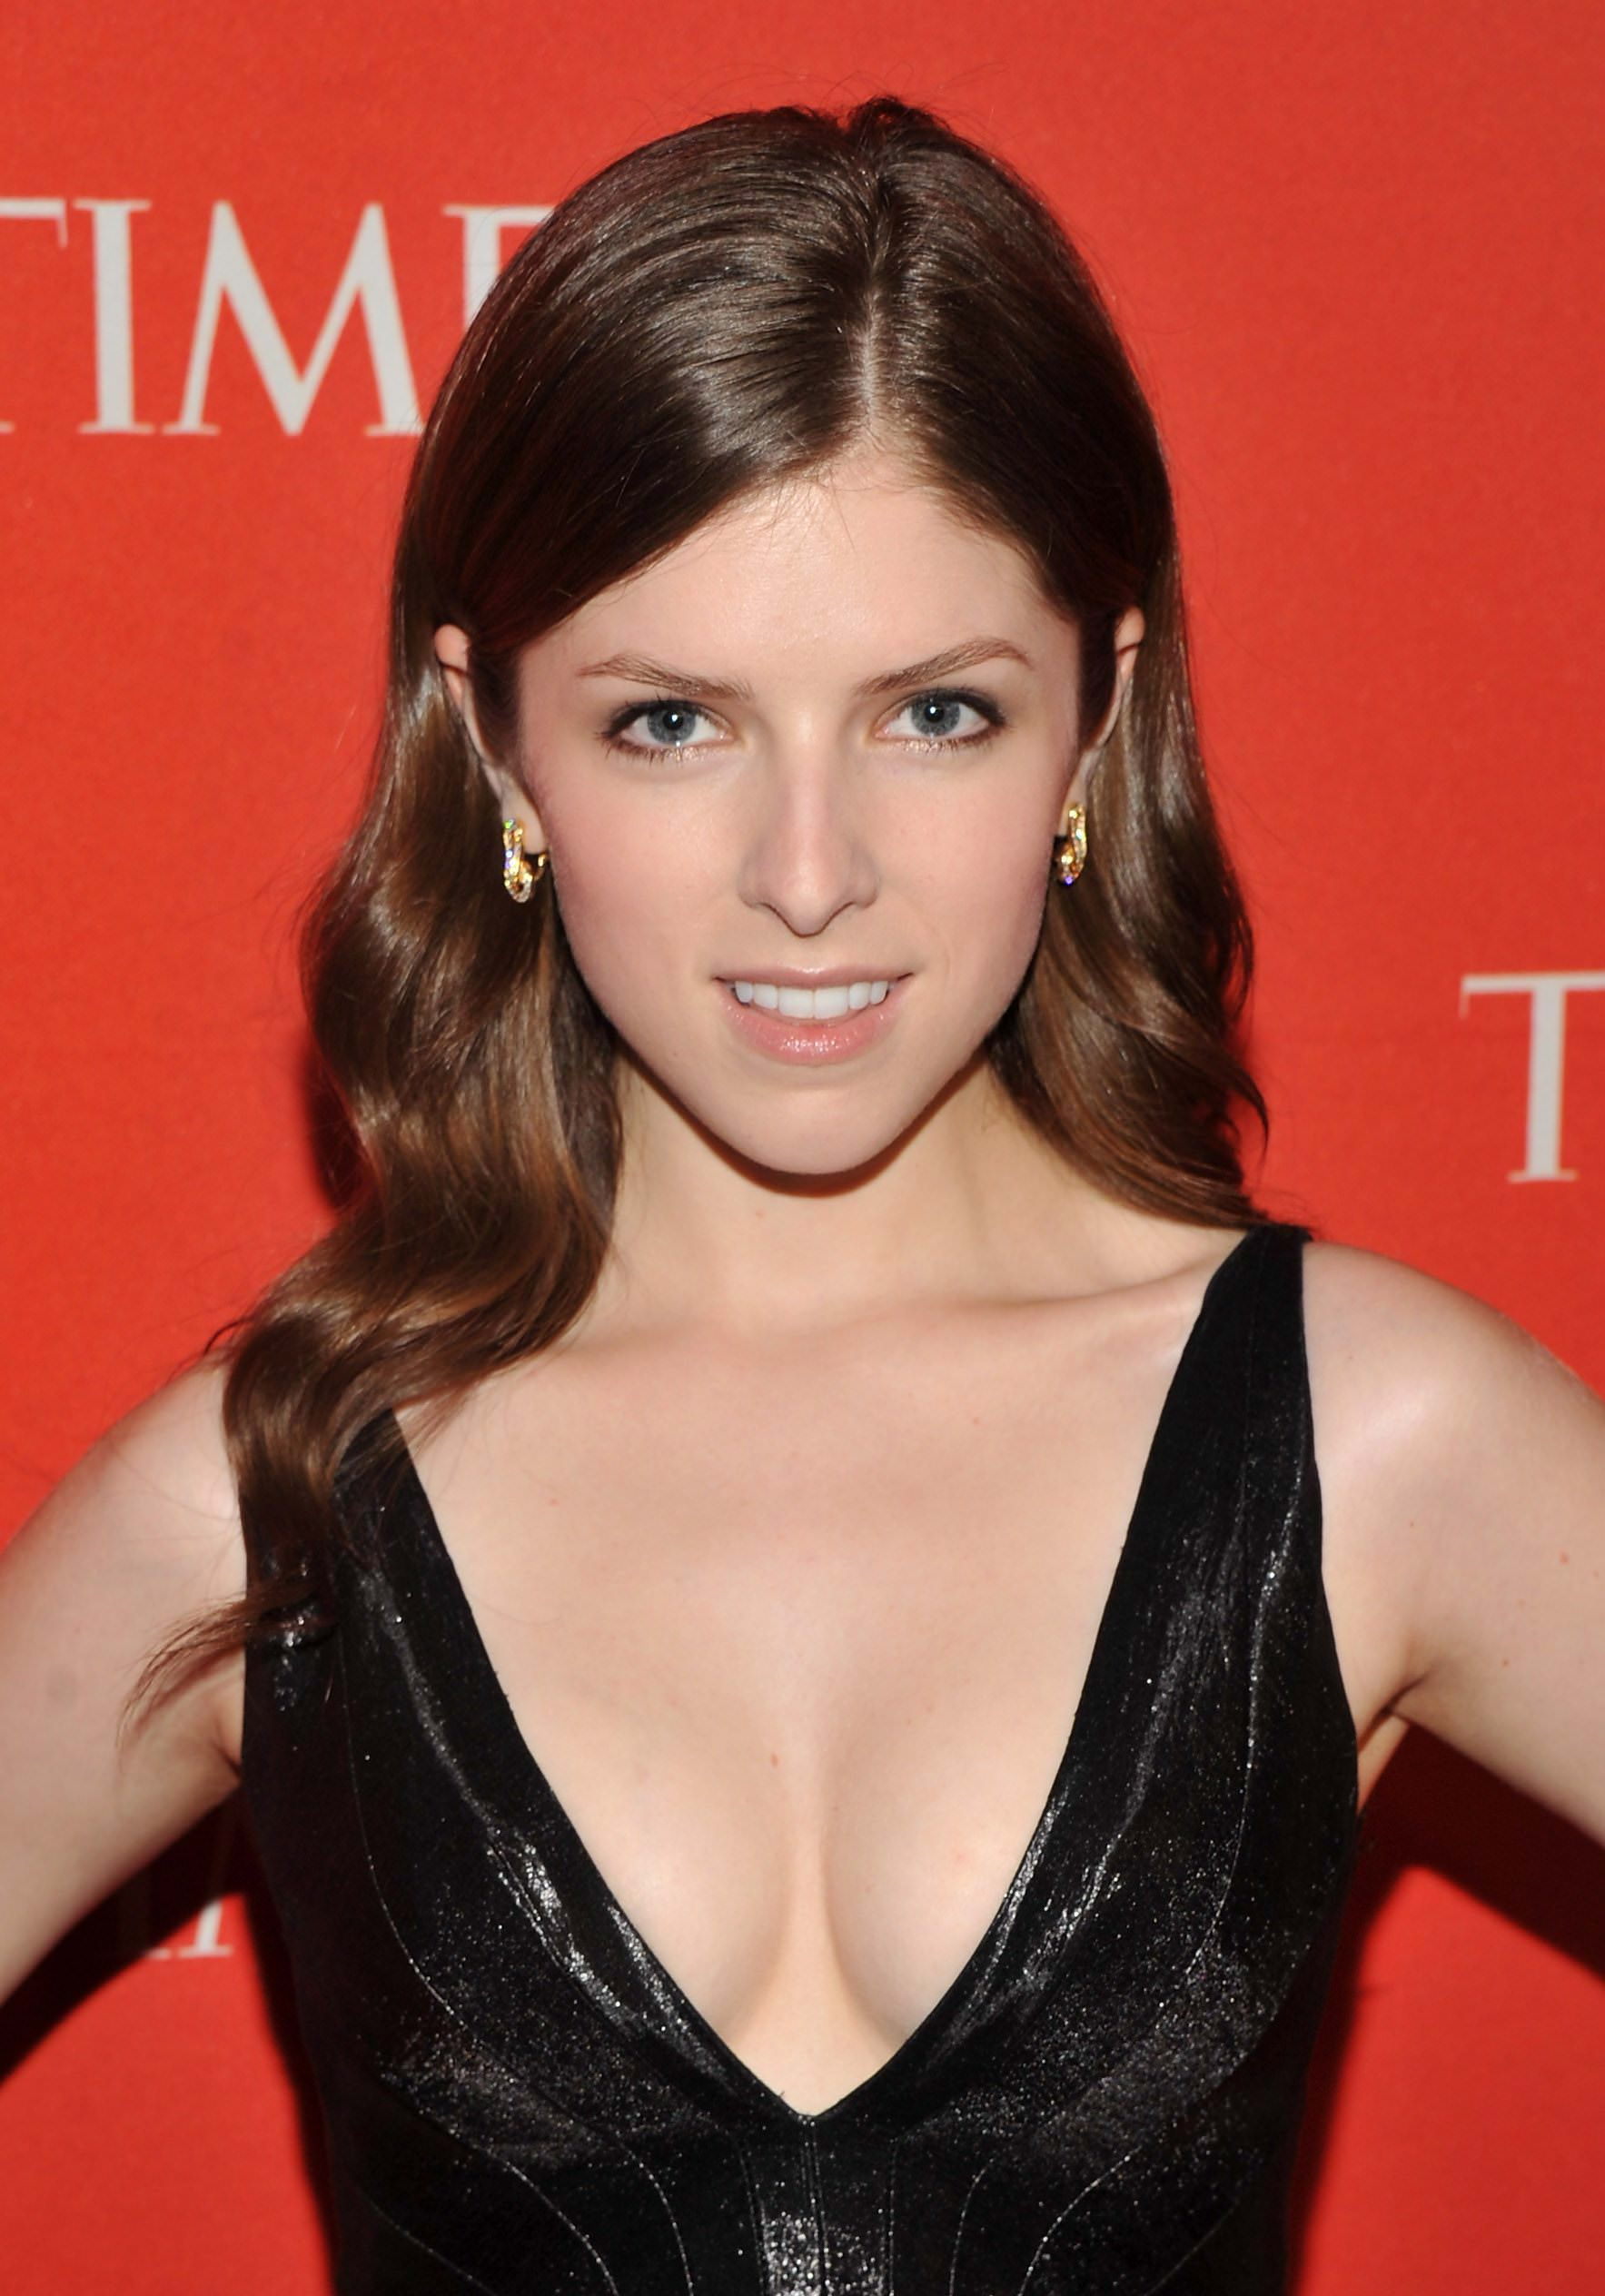 49 Hottest Anna Kendrick Bikini Pictures Are Just Too Damn ...